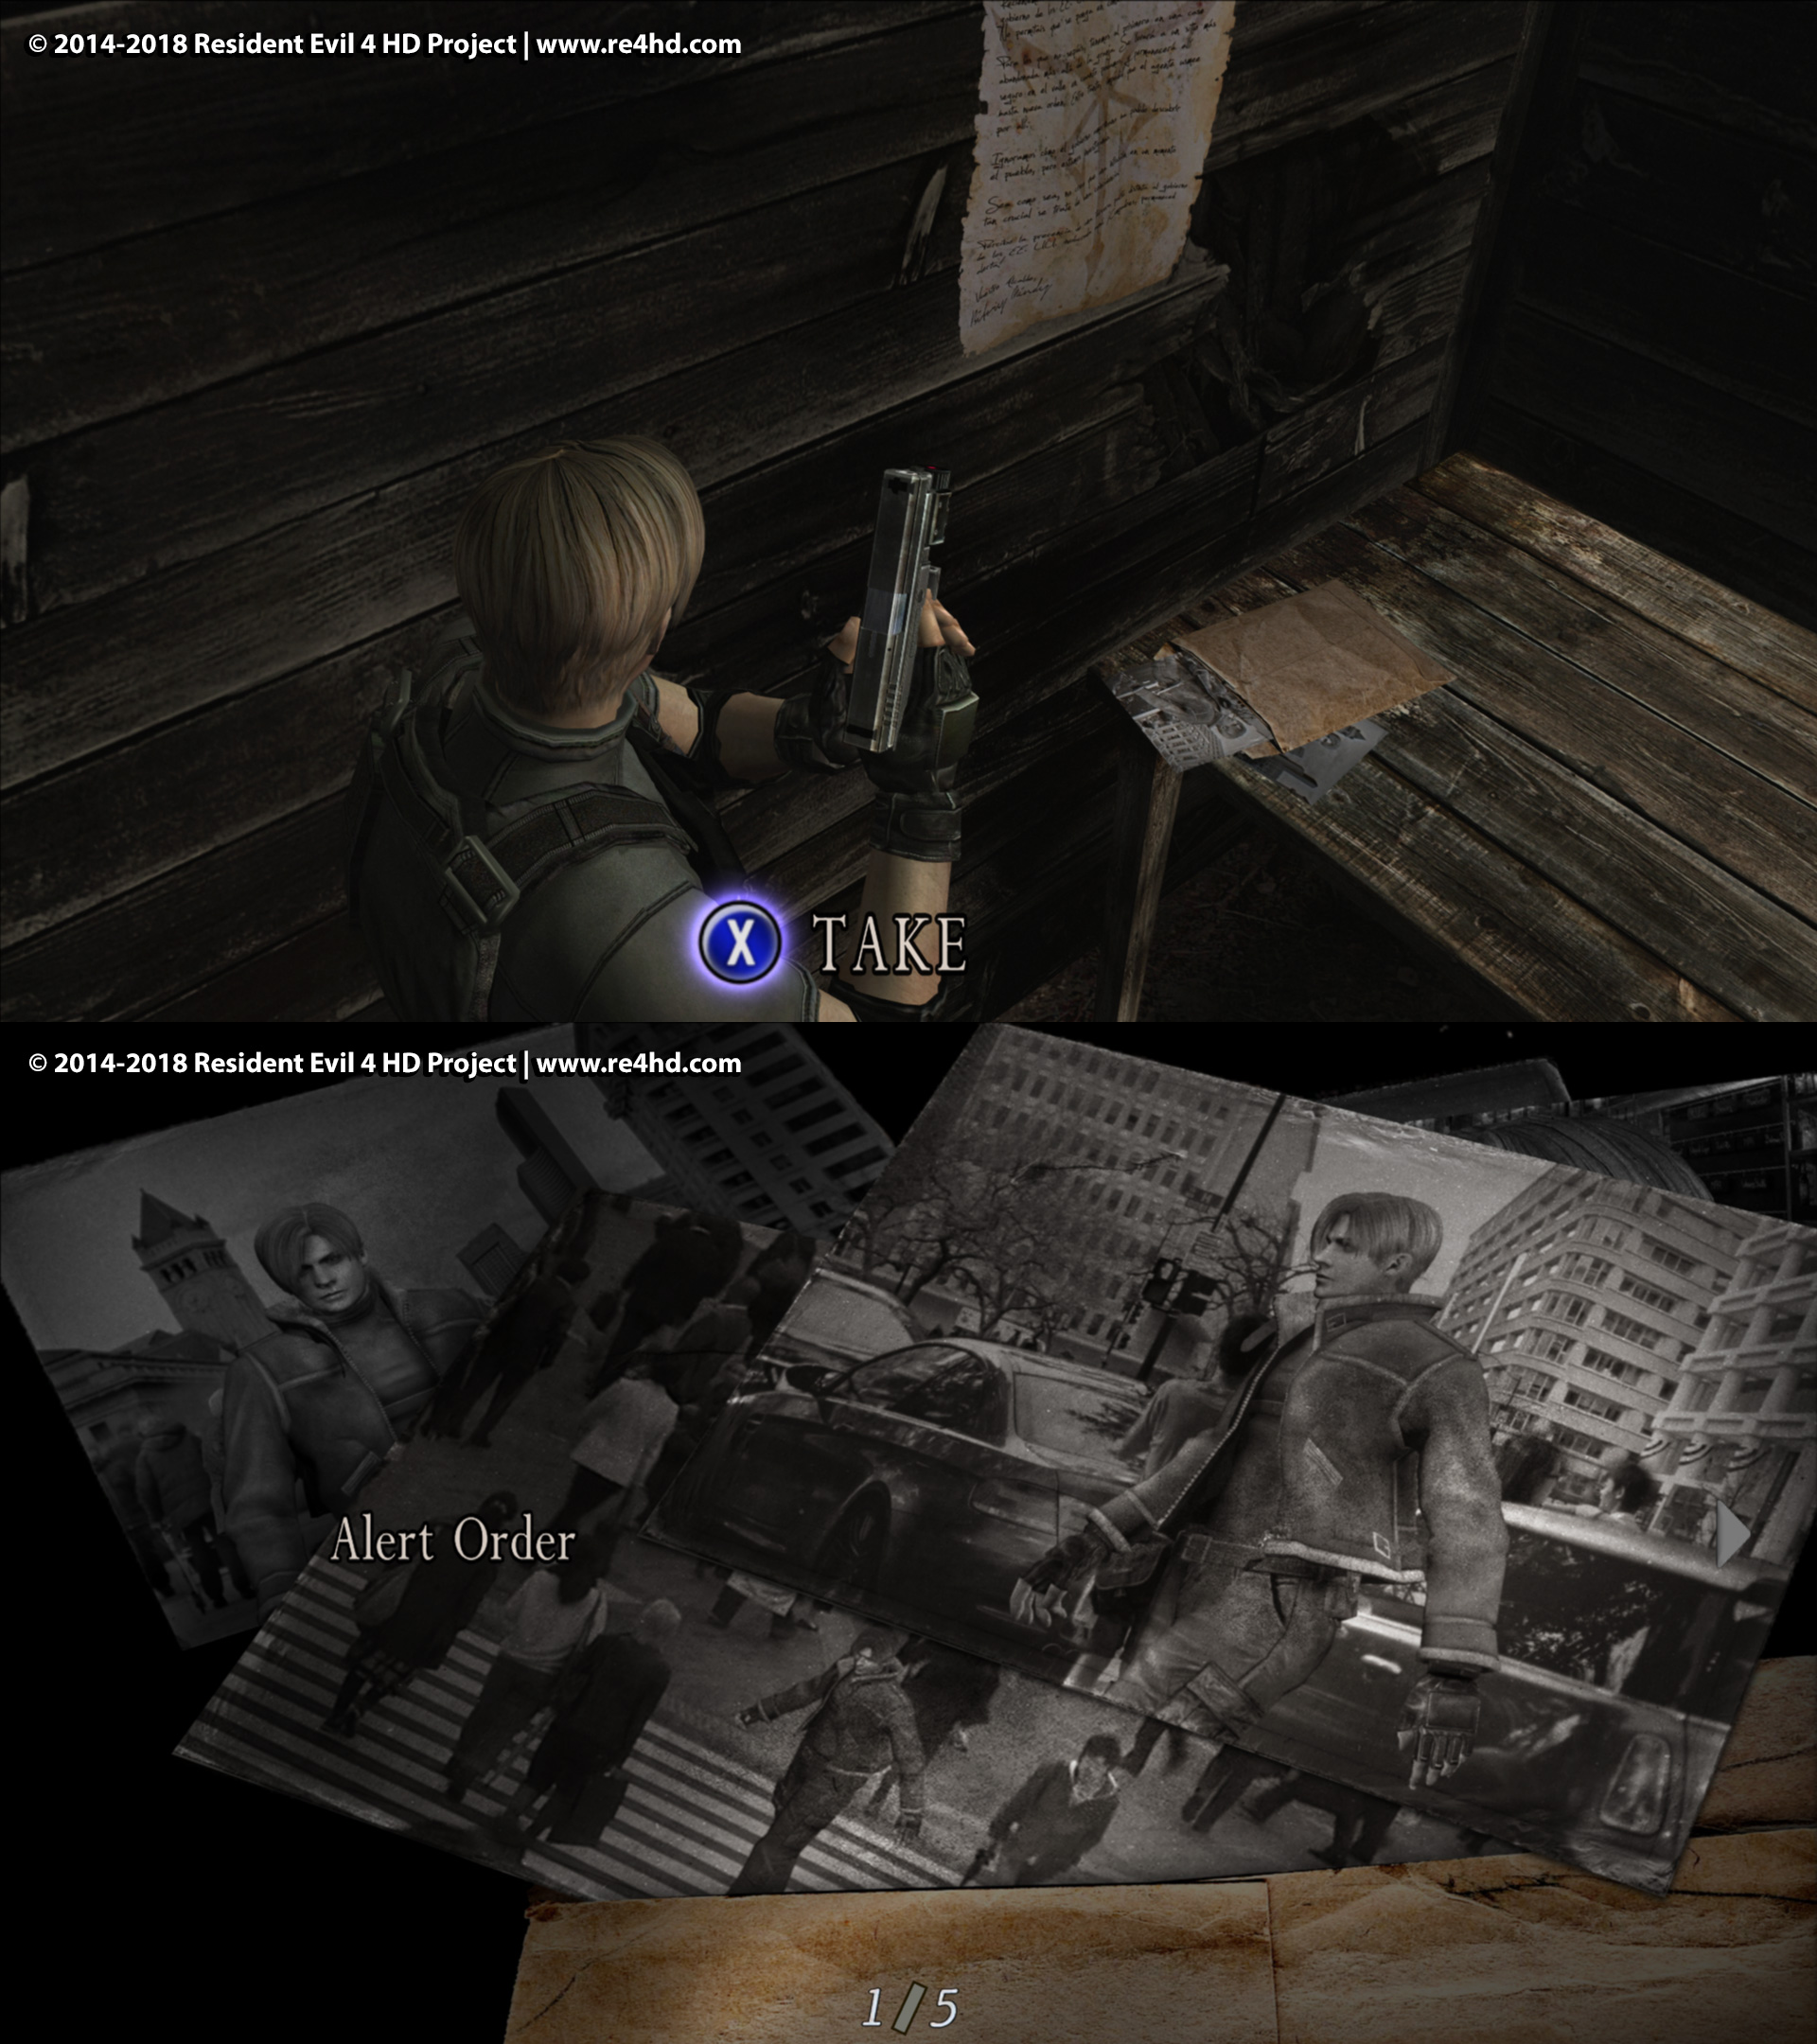 Resident Evil 4 HD Project | The Complete HD Remaster of